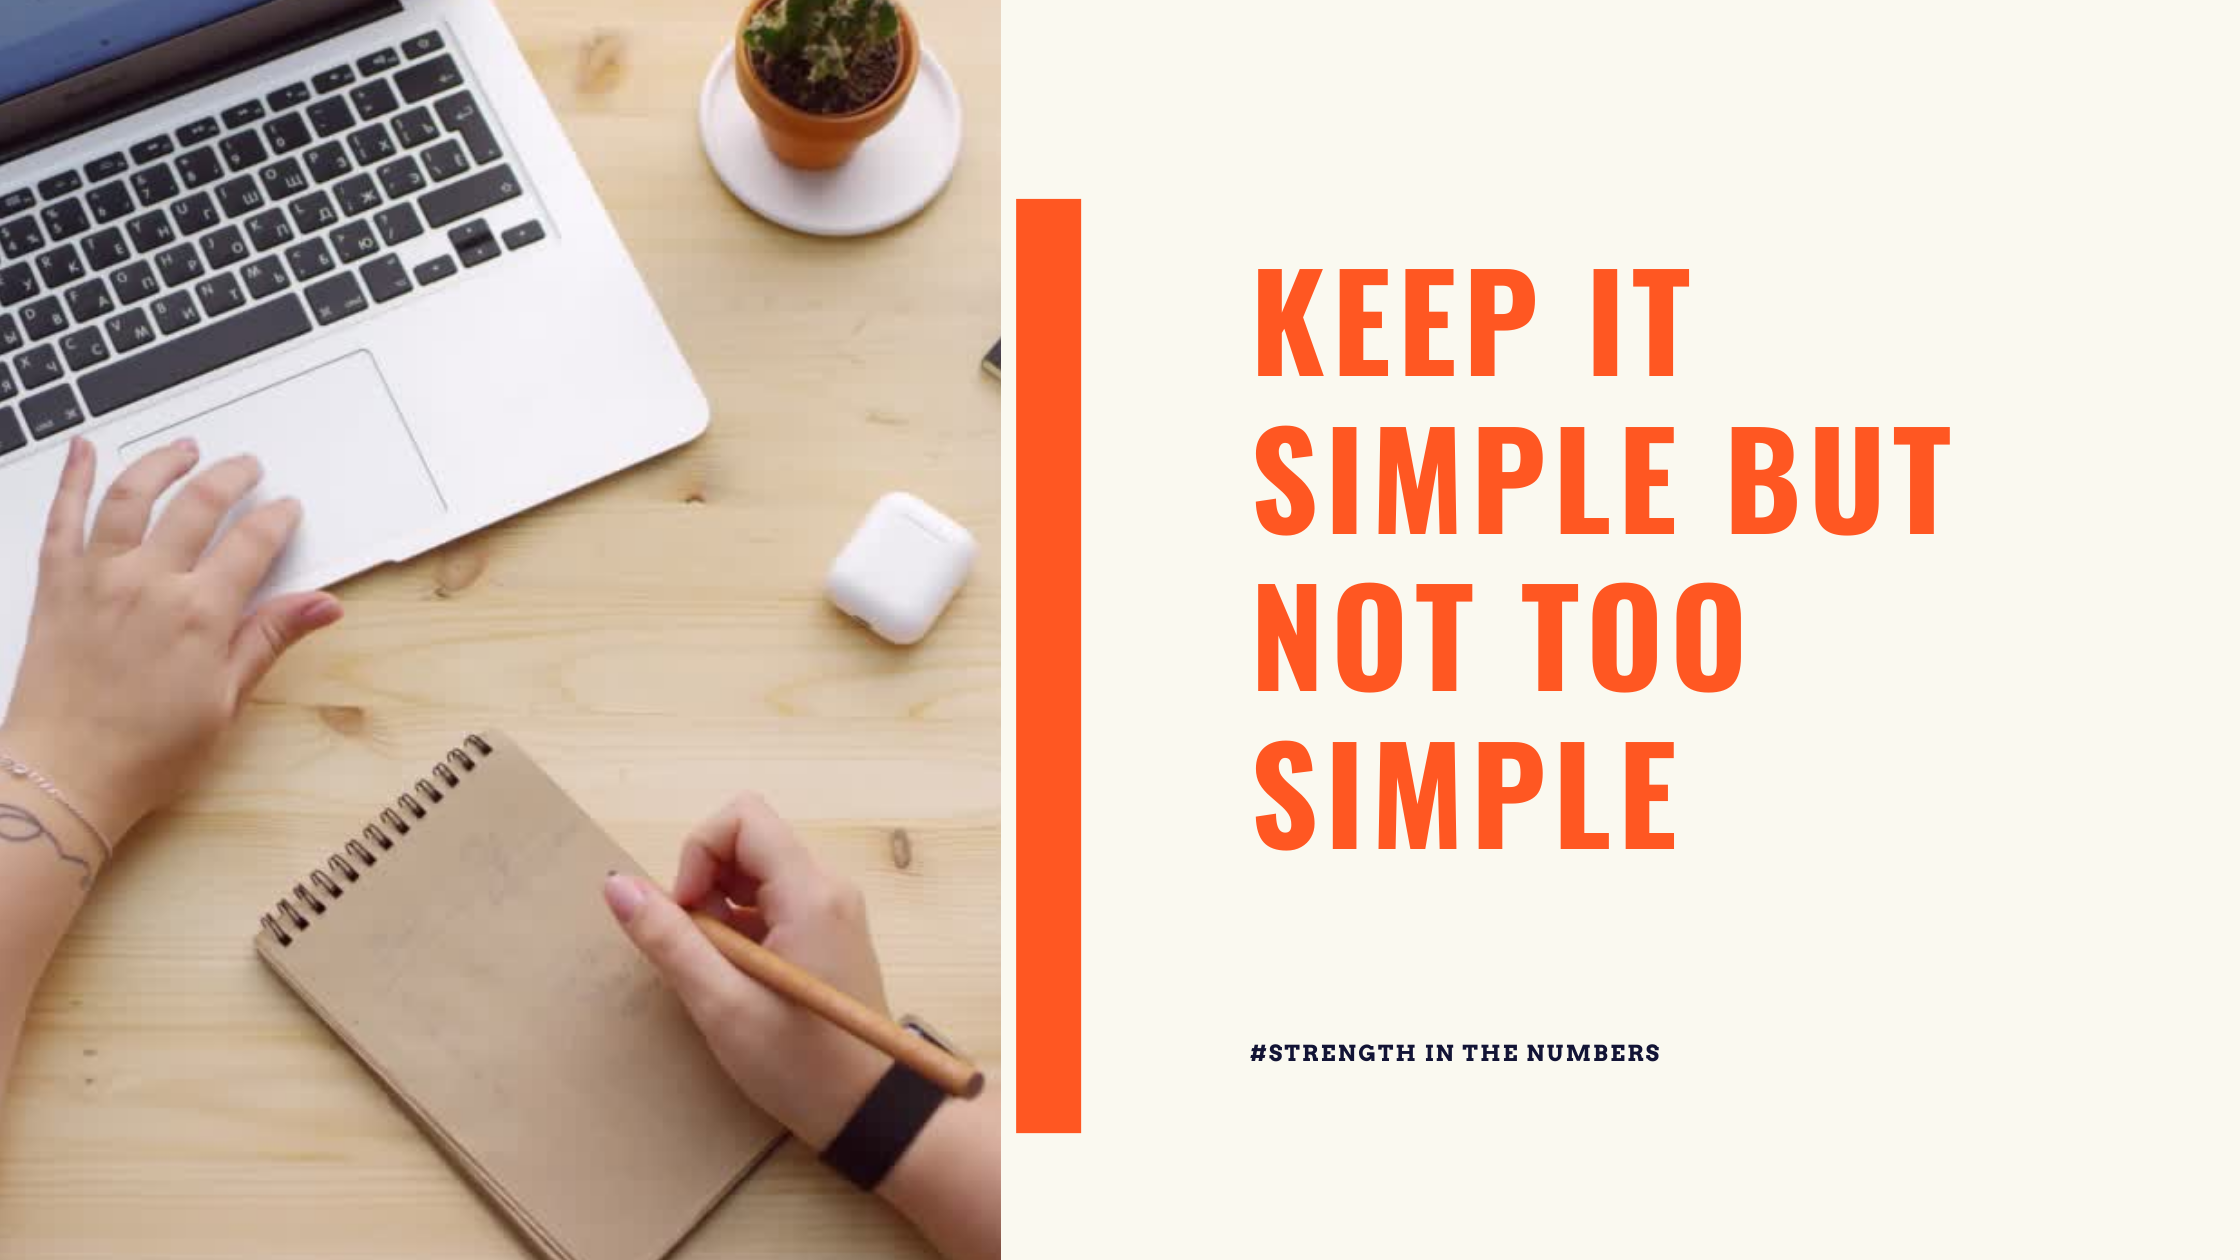 #265: Monday Memo: Keep It Simple BUT Not Too Simple